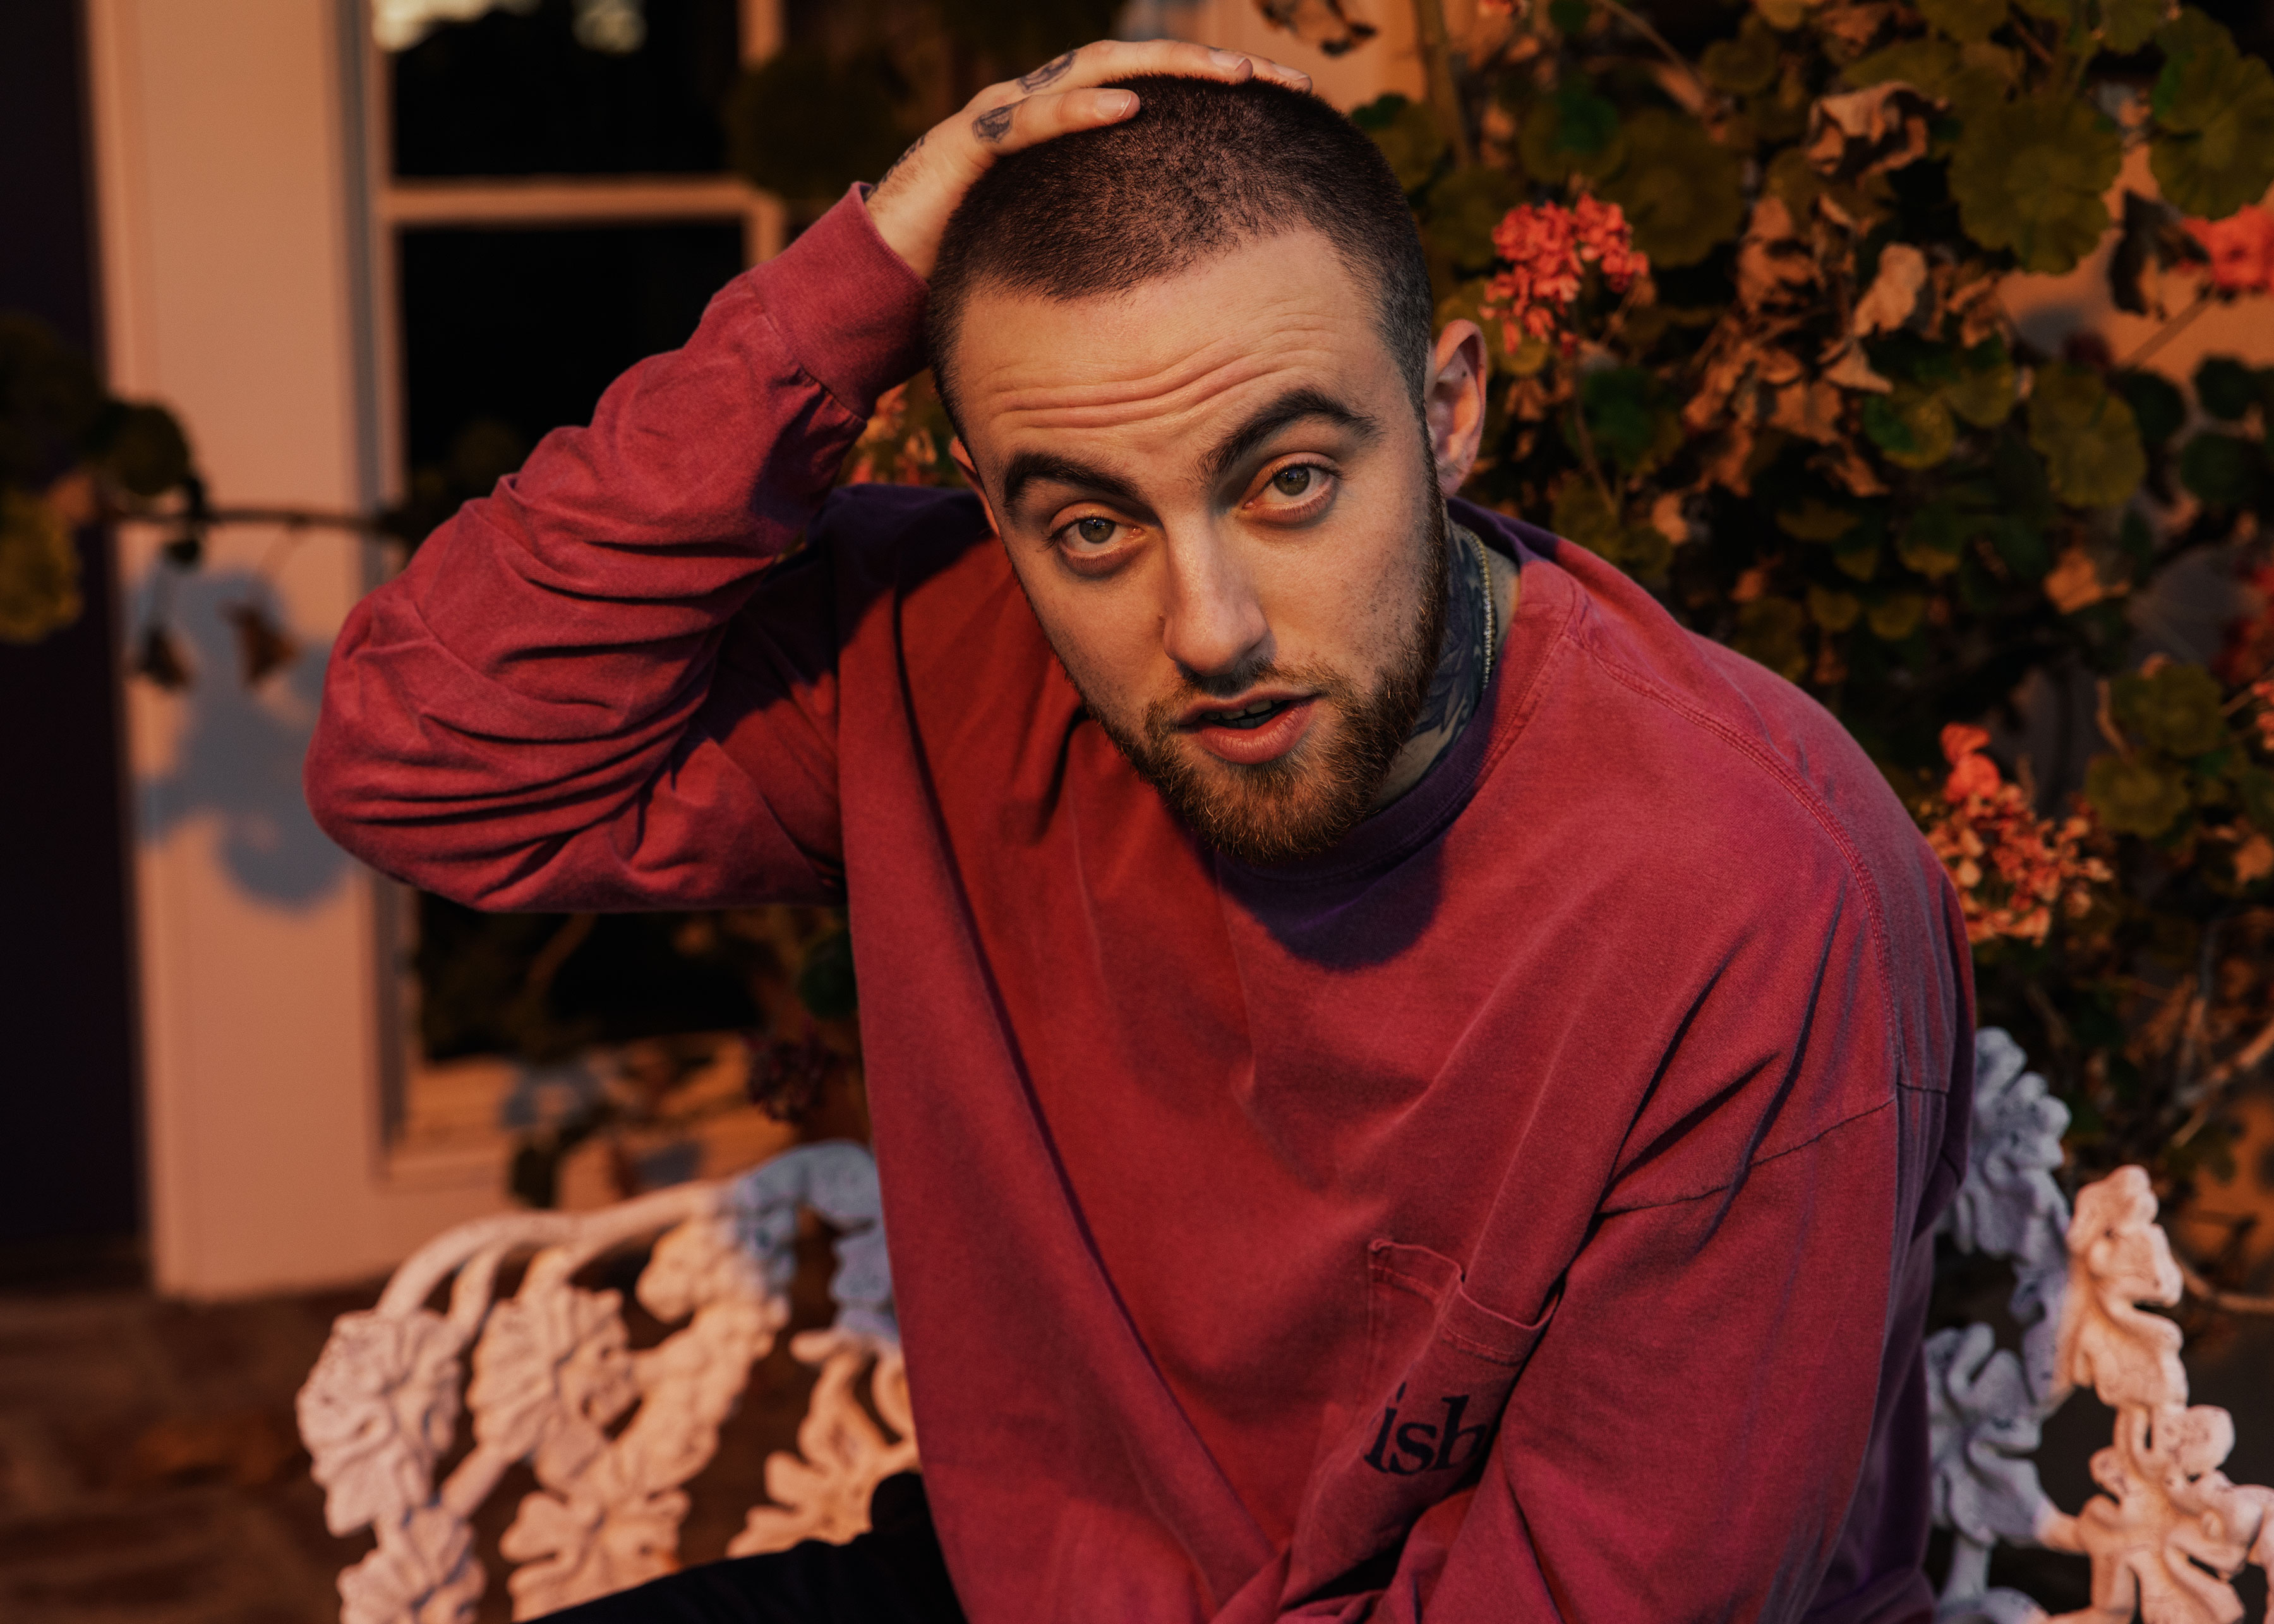 Mac Miller photographed July 31st at his home in Los Angeles, CA.